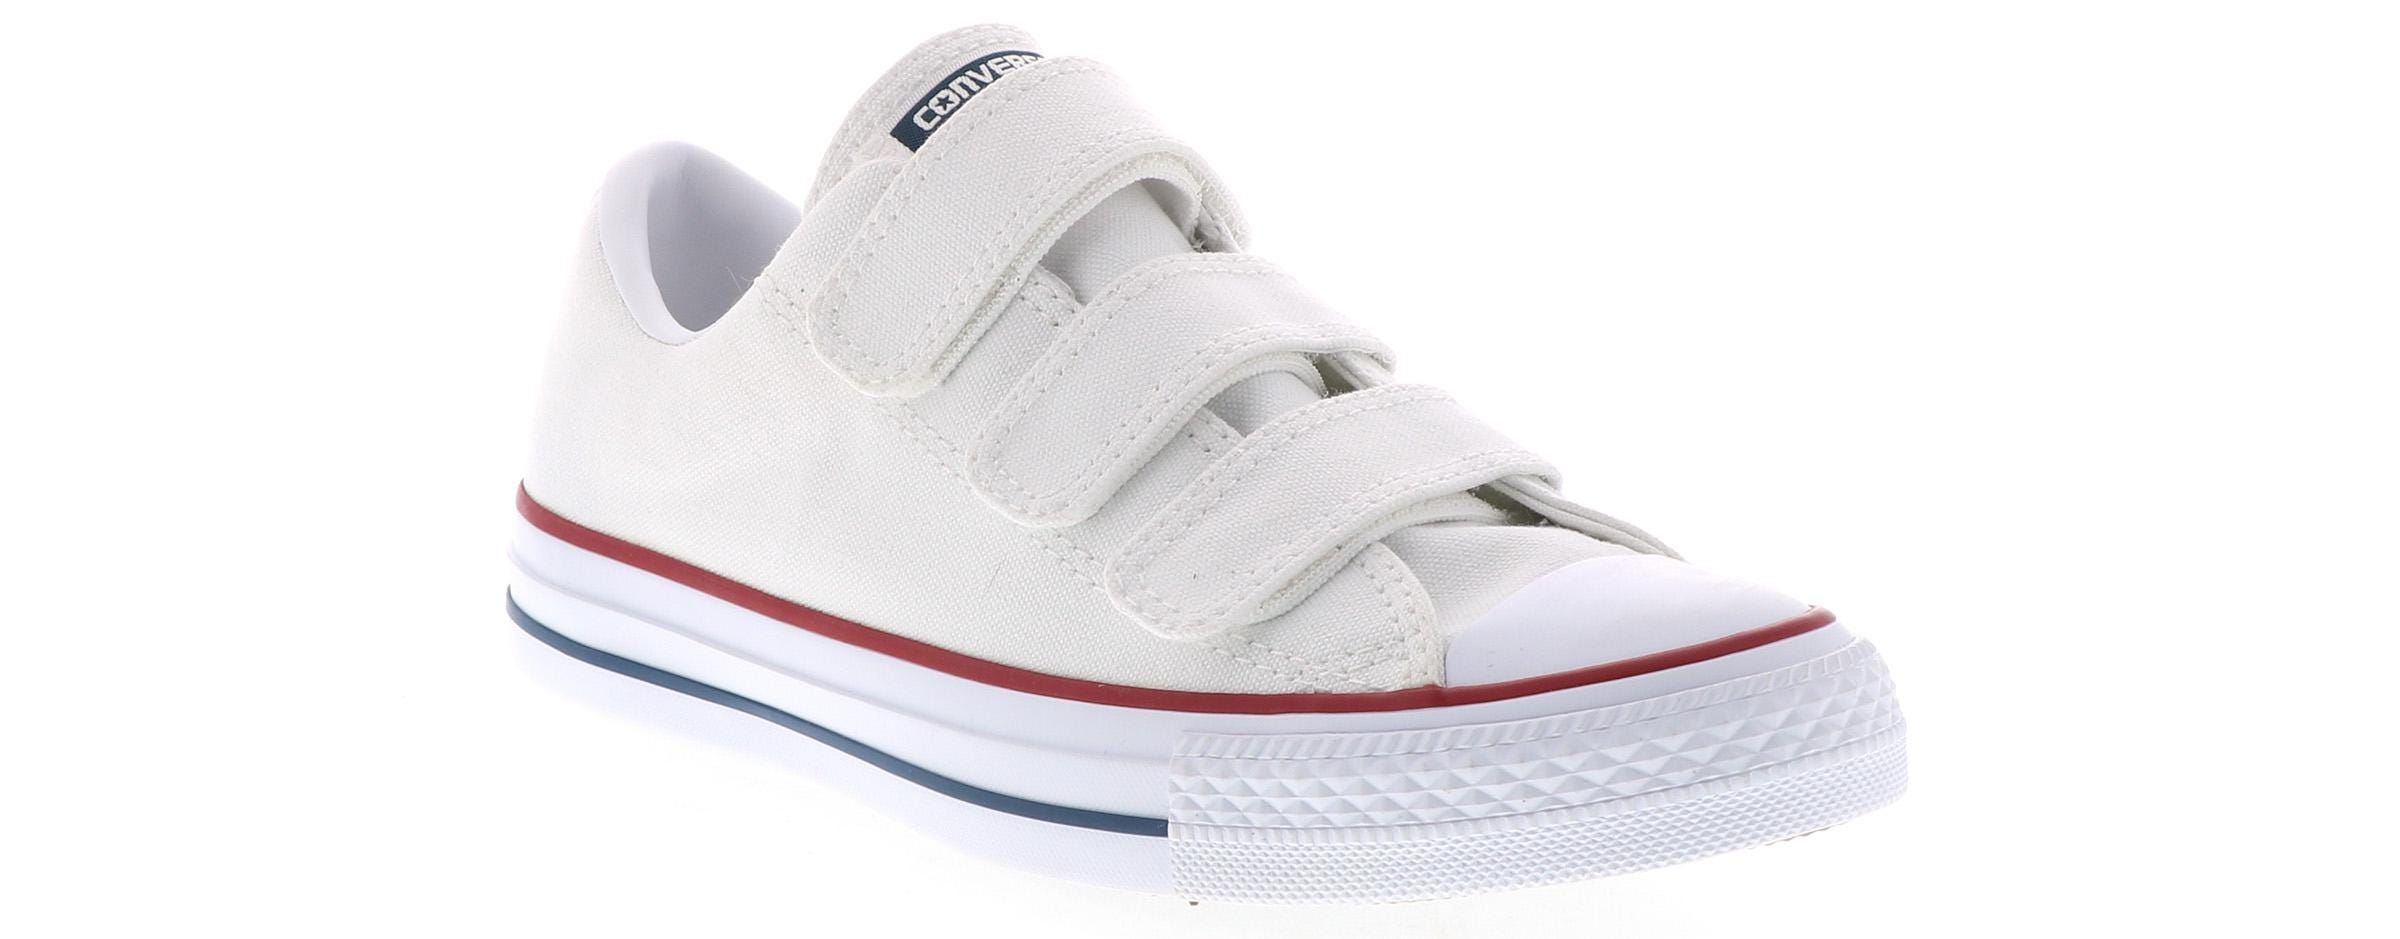 Women's Converse Ctas 3V Ox White | Shoe Sensation